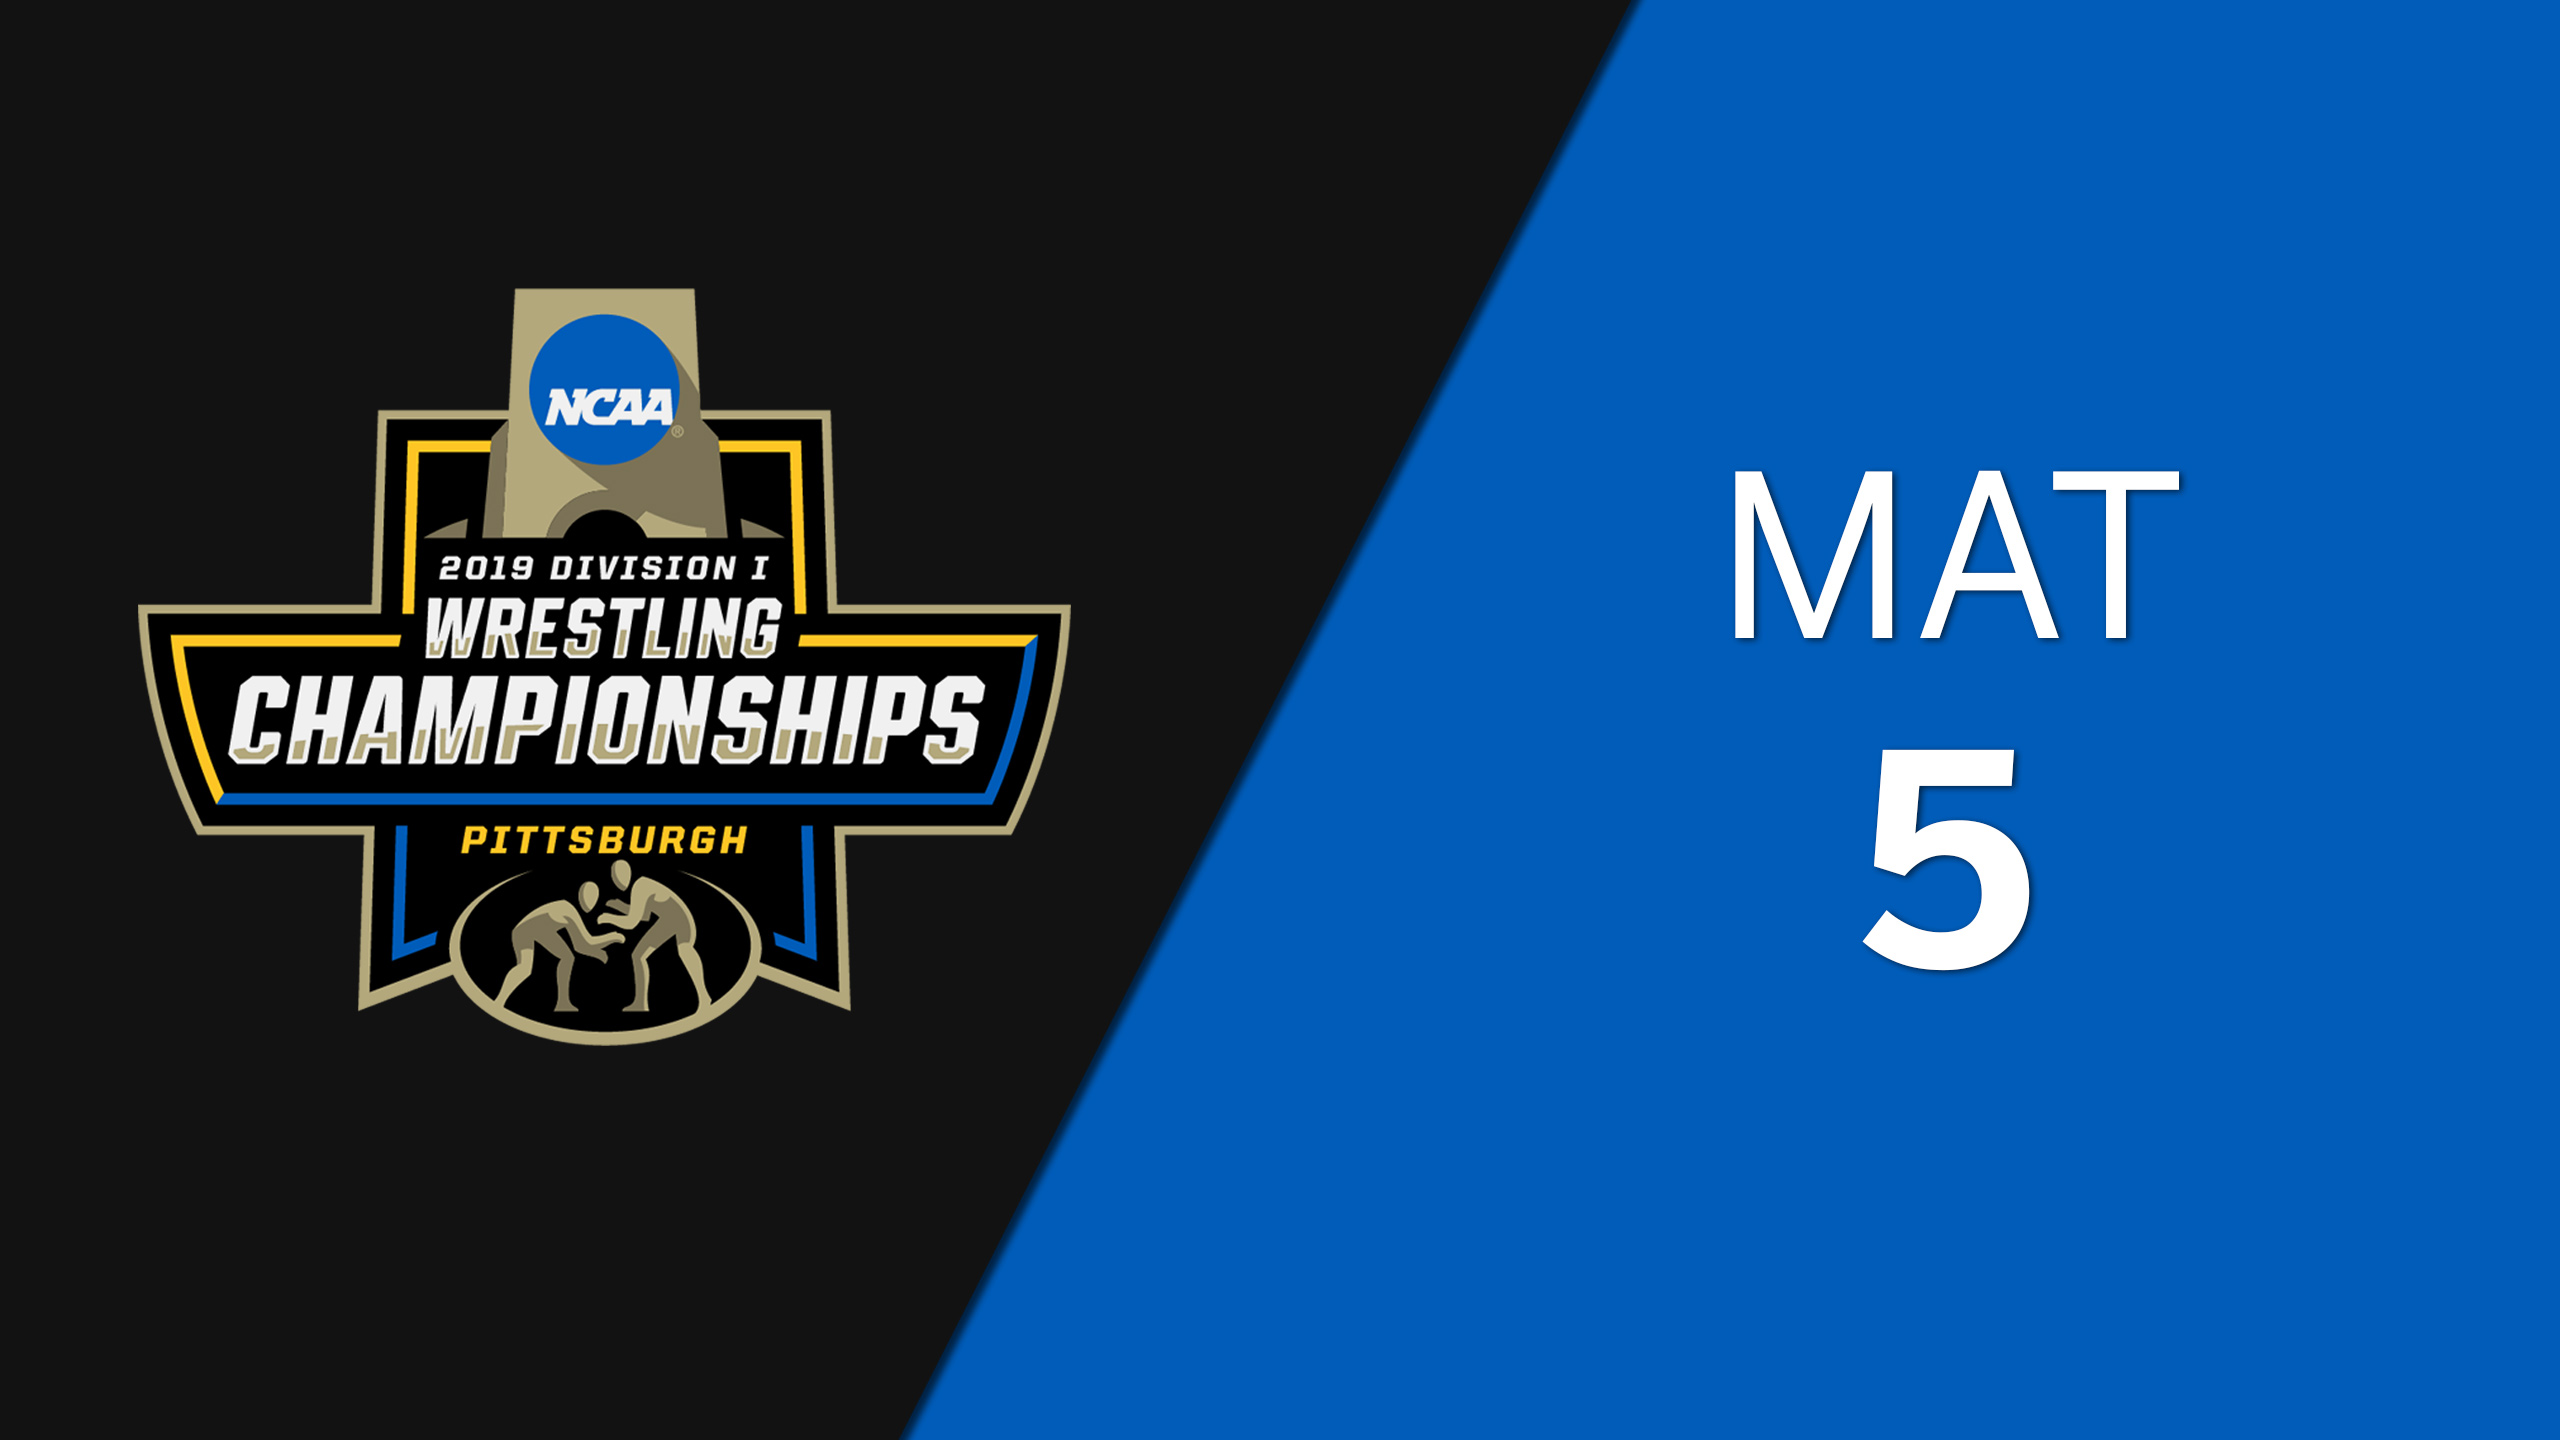 NCAA Wrestling Championship (Mat 5, Second Round)